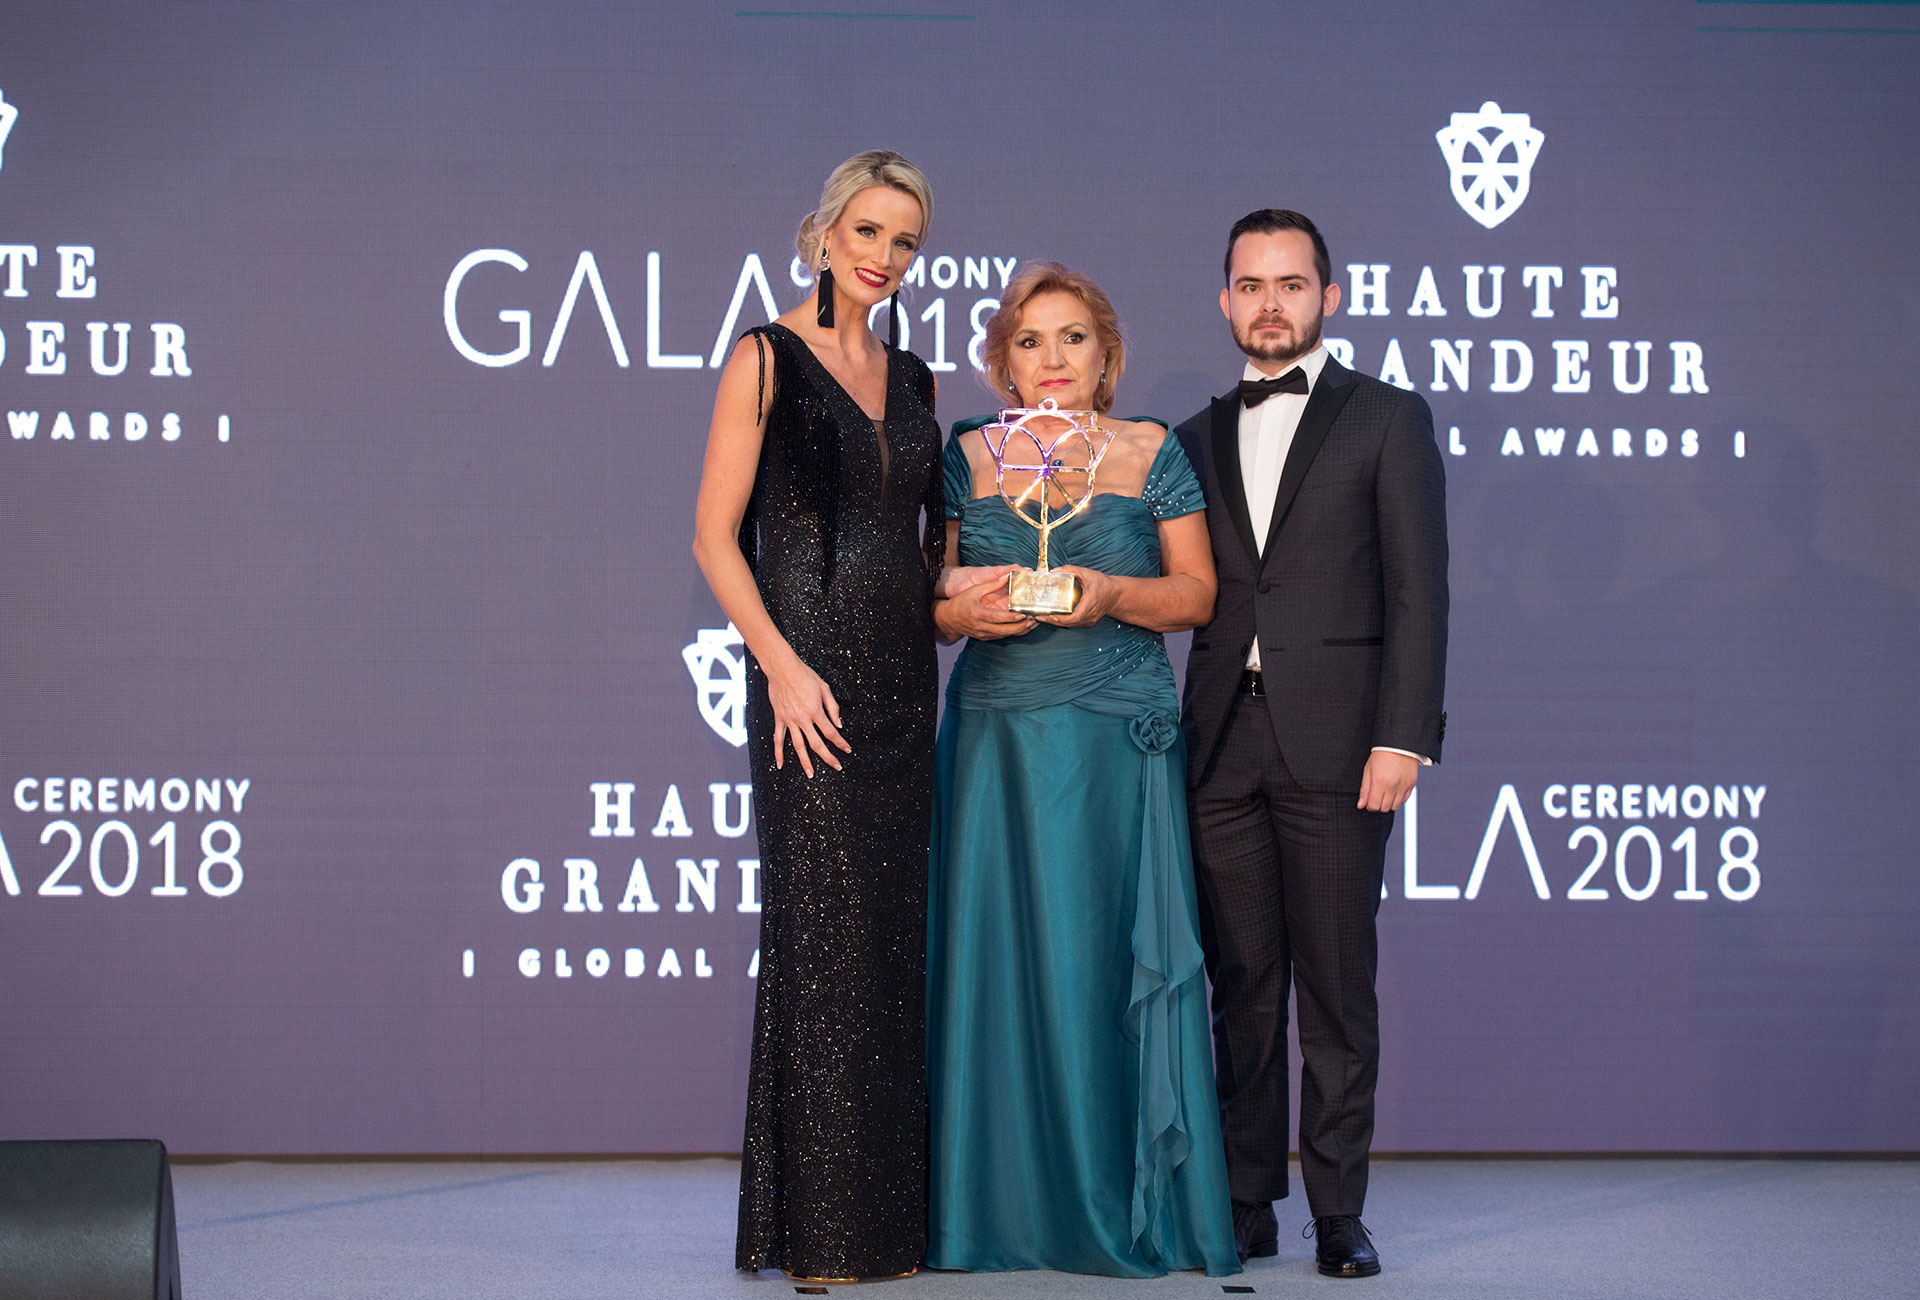 Haute Grandeur 2018 Awards for Spa Club Bor Velingrad